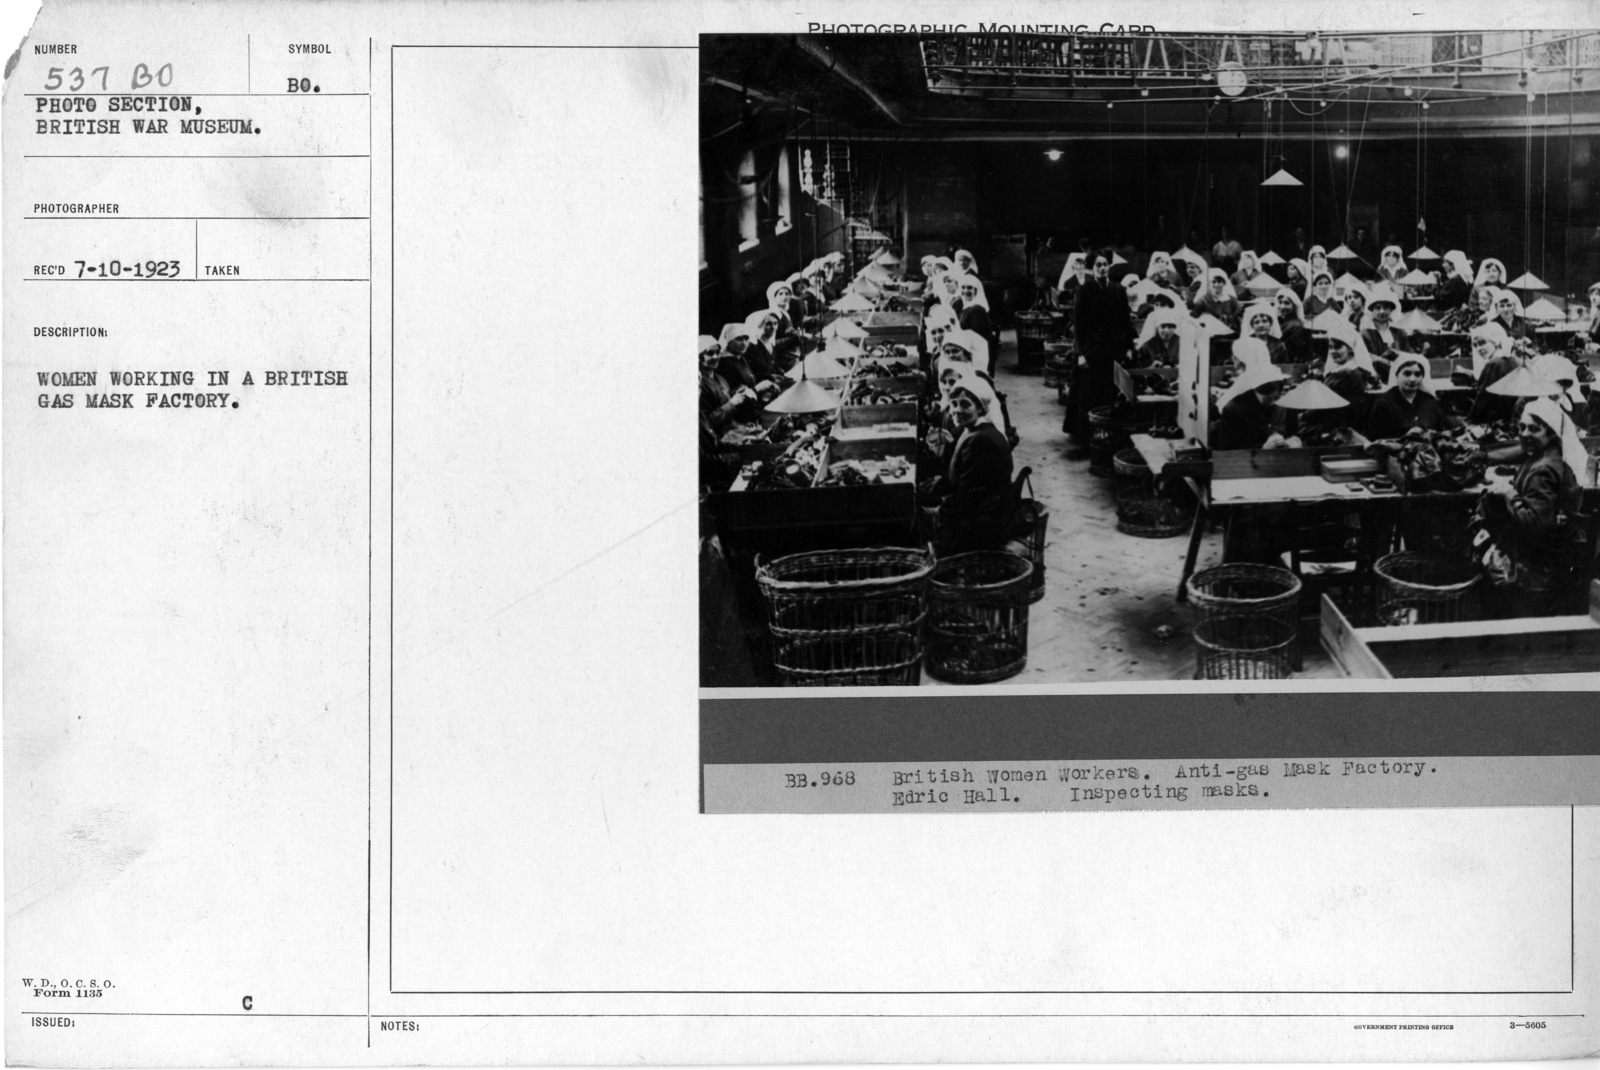 Women working in a British gas mask factory